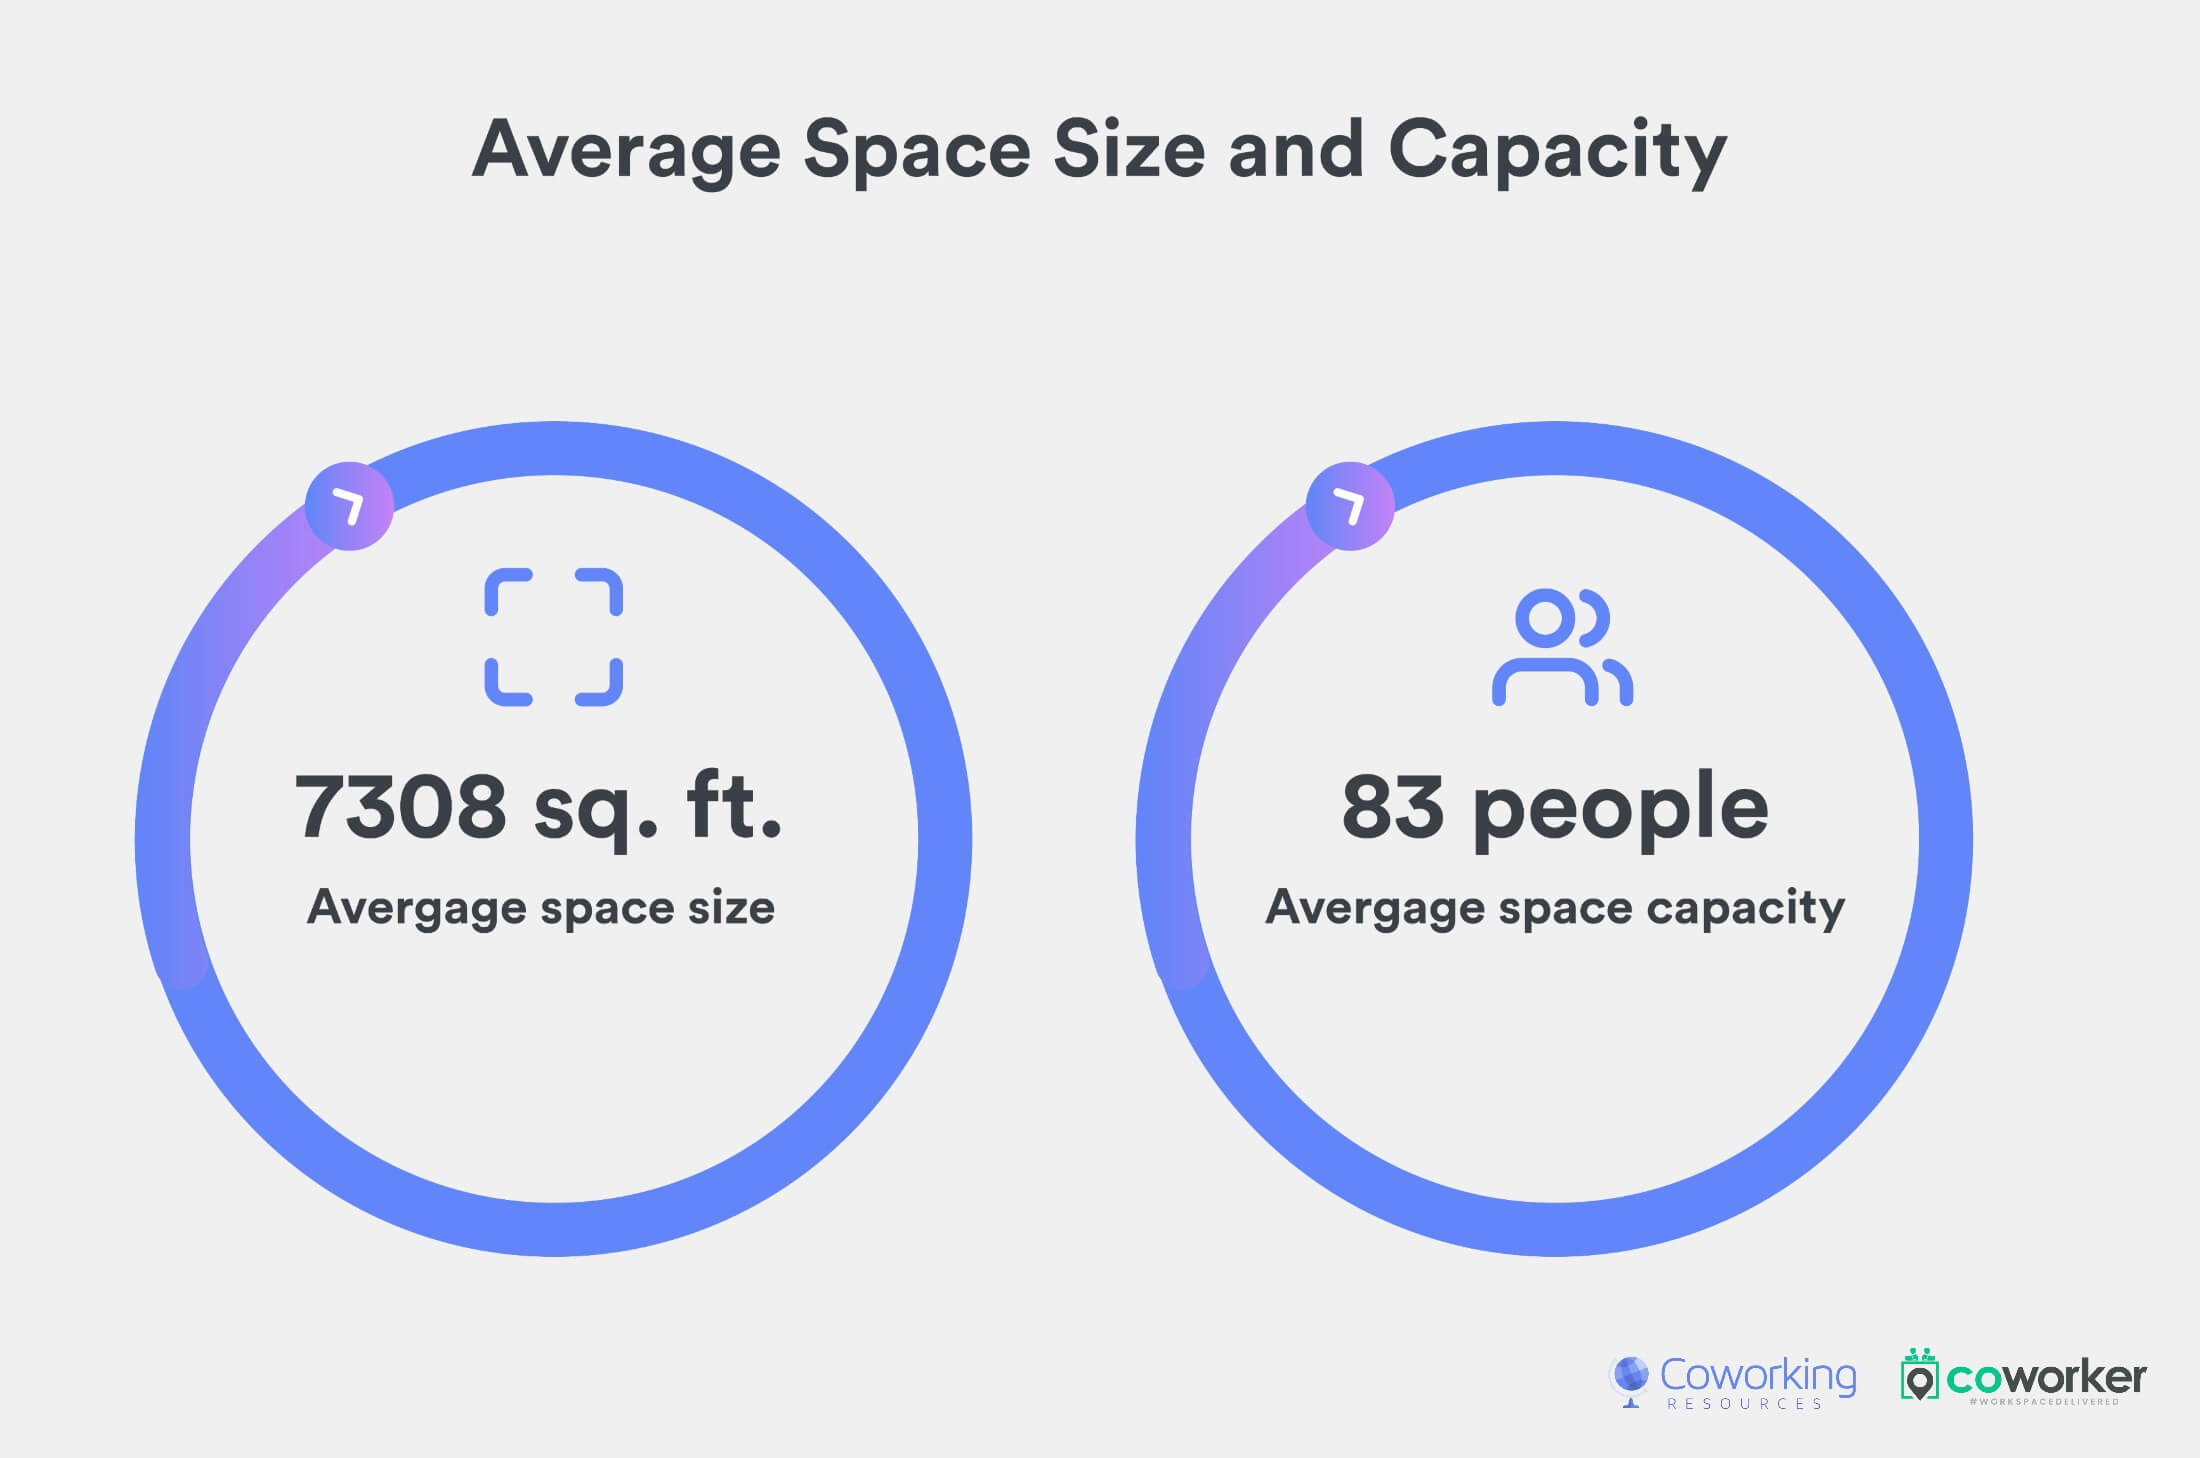 Average Shared Workspace Space Size and Capacity